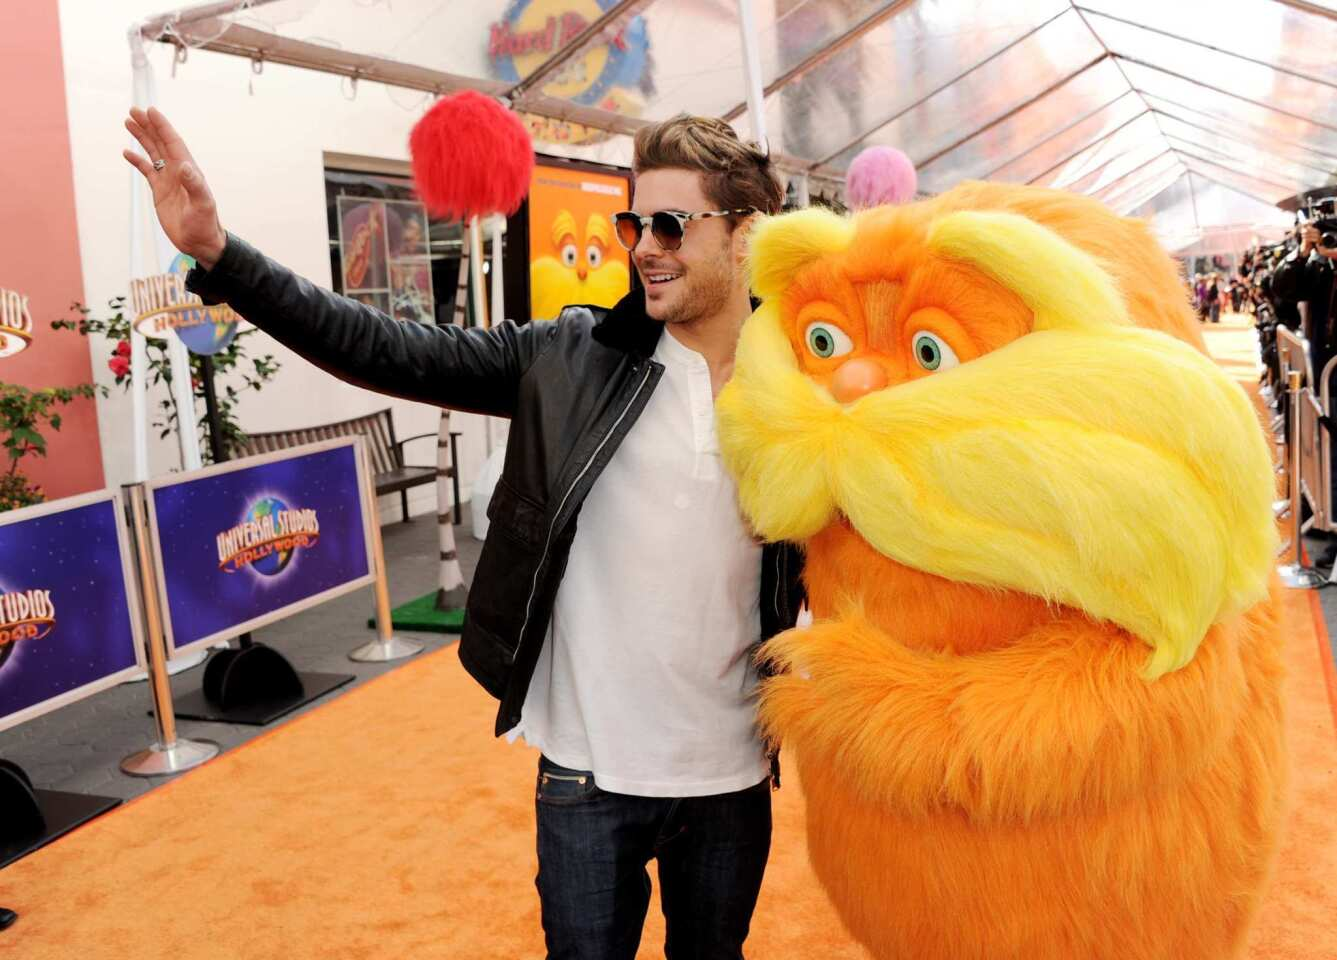 """Zac Efron and the cast of """"The Lorax"""" hit the red carpet at Universal City on Feb. 19 to celebrate the opening of the new Dr. Seuss children's movie. Efron provides the voice of Ted, a 12-year-old boy from the artificial town of Thneed-Ville who sets out in search of real trees to impress a girl."""